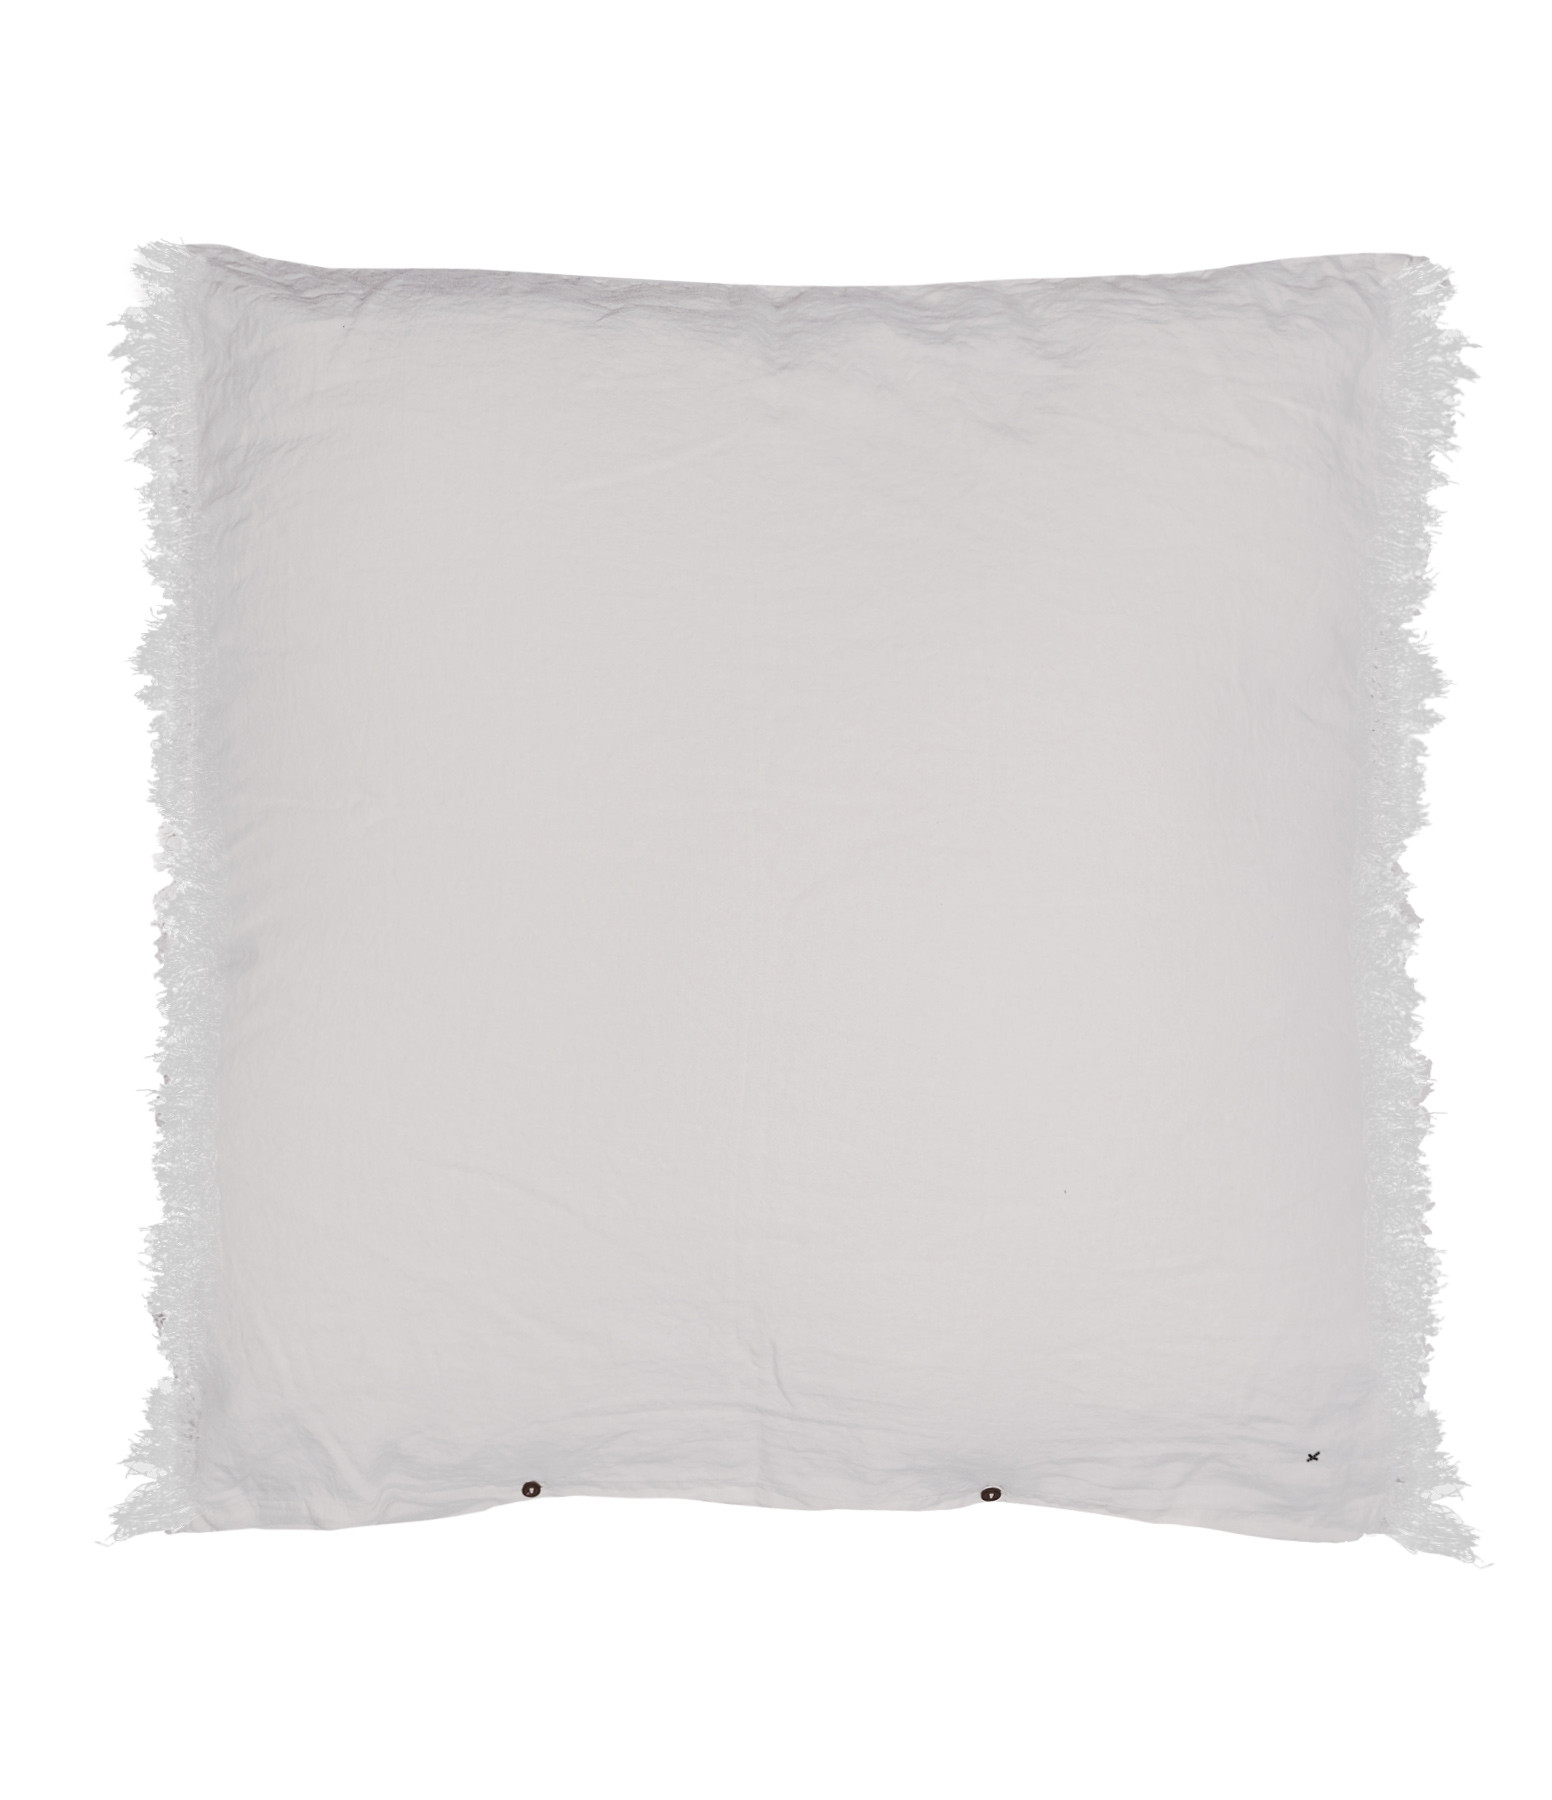 BED AND PHILOSOPHY - Grand Coussin Hug Frangé Lin Plume